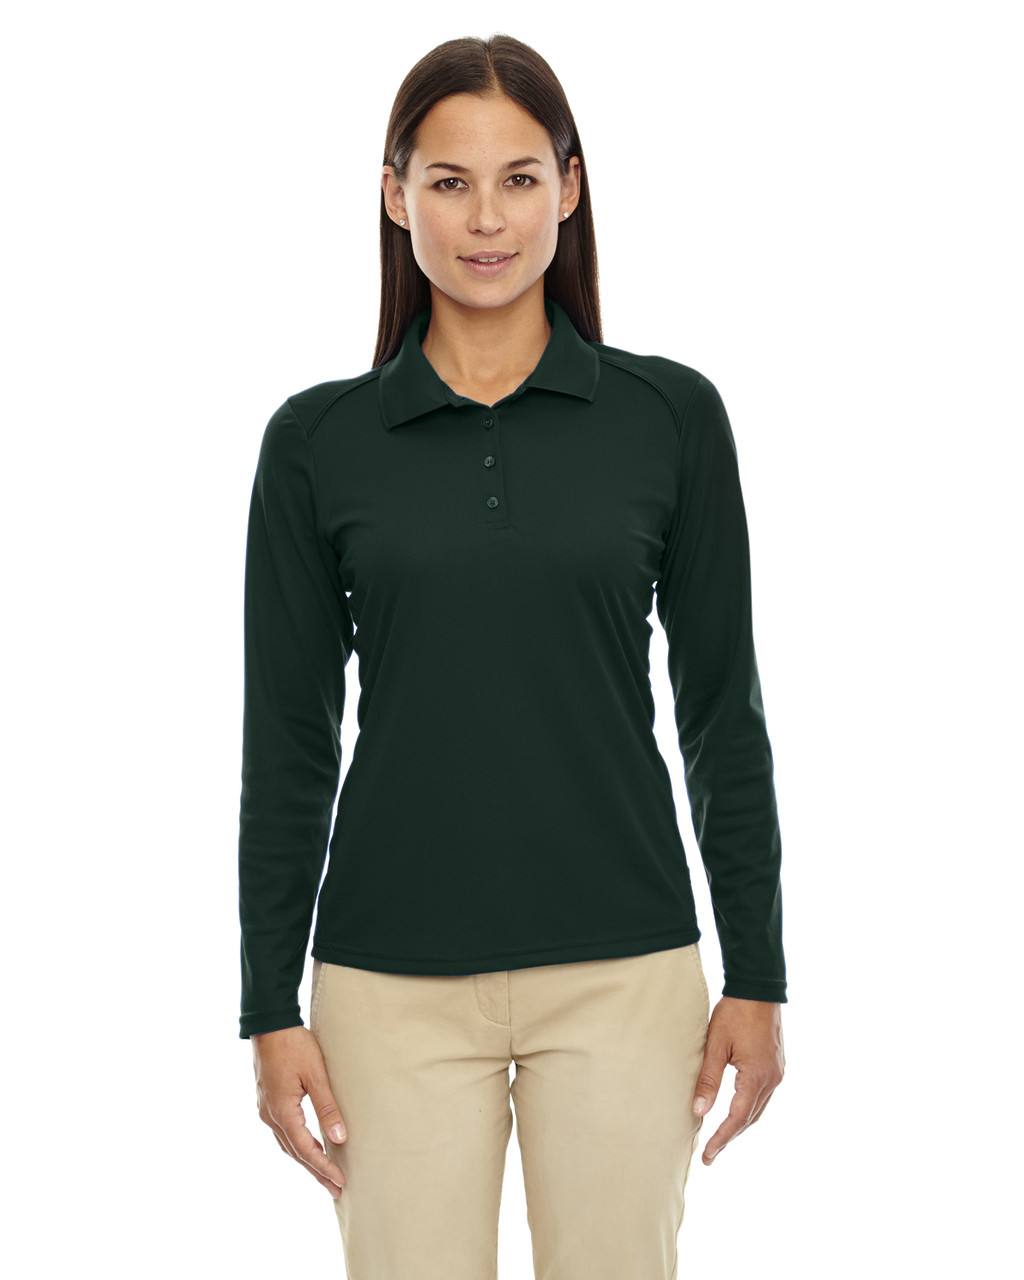 Forest Green 75111 Ash City - Extreme Eperformance Ladies' Long-Sleeve Polo Shirt